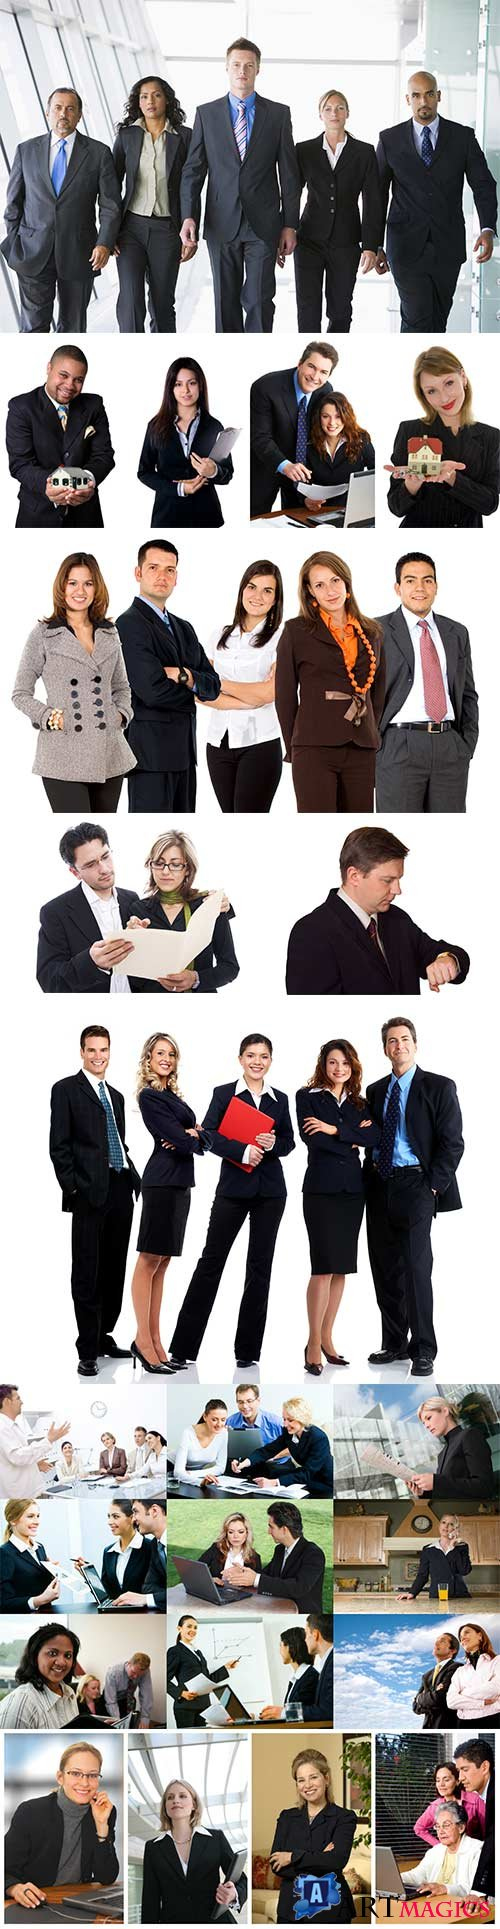 Business people - 3